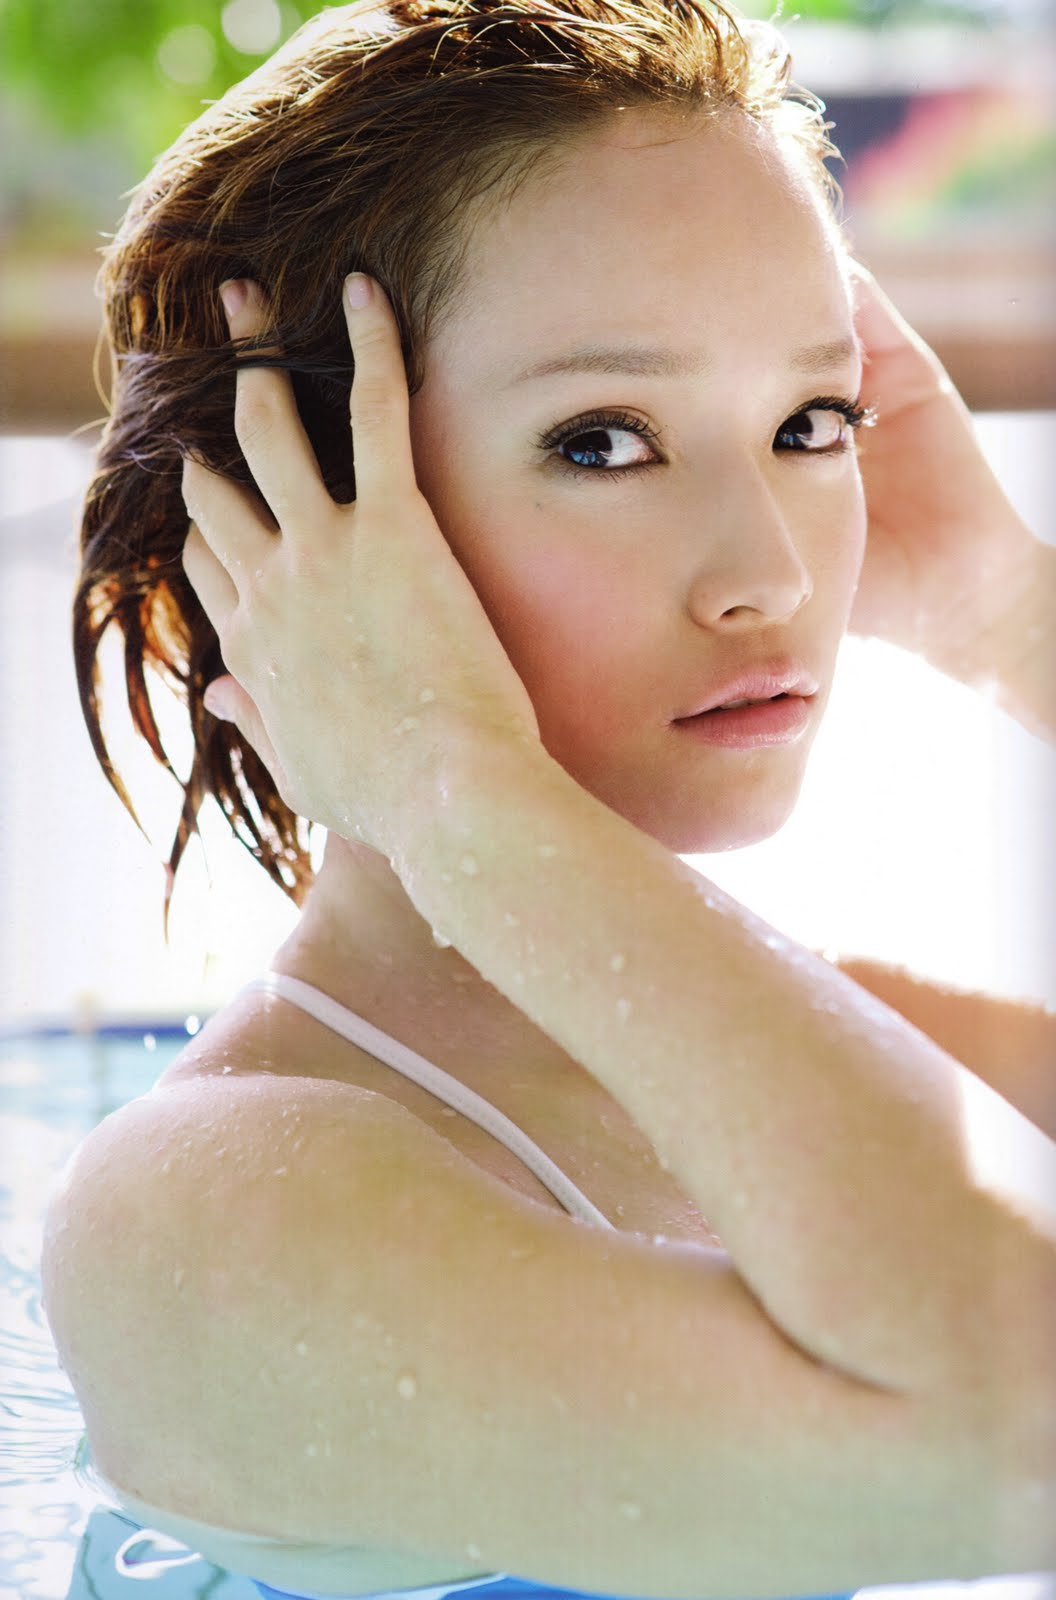 Kamei Eri In Gym And Swimming Pool Amy Solutions